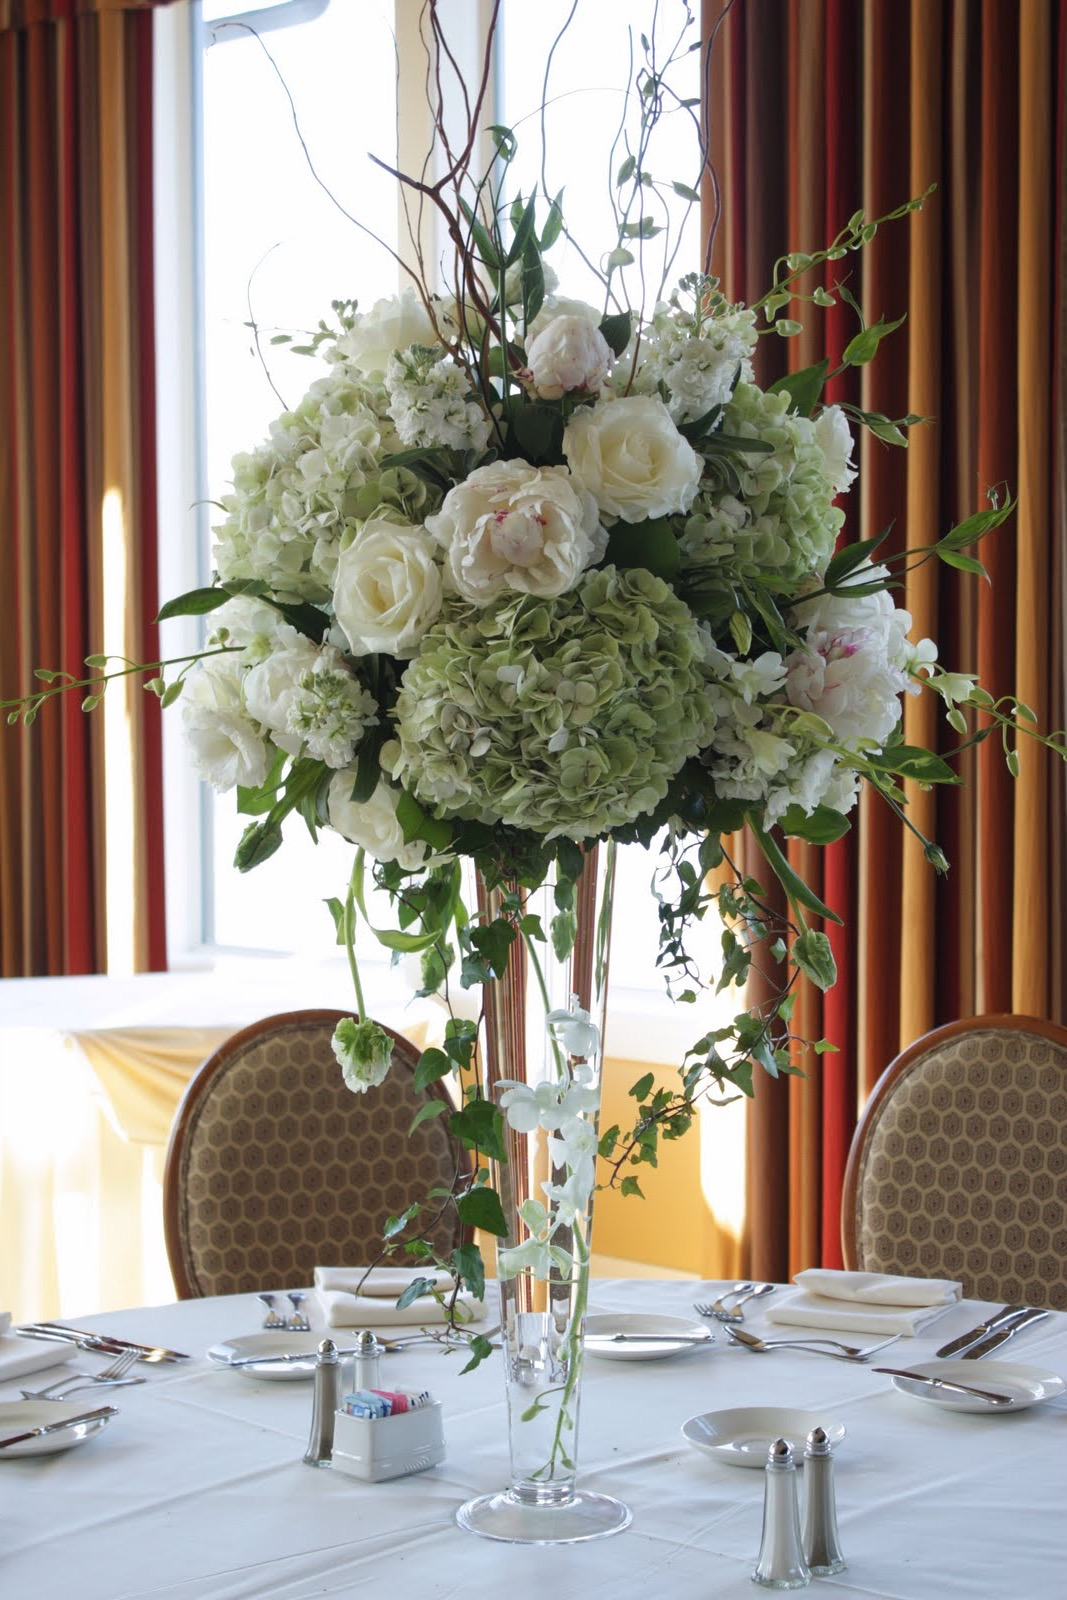 Beauty Tall White Hydrangea And Rose Wedding Centerpieces (Image 4 of 30)